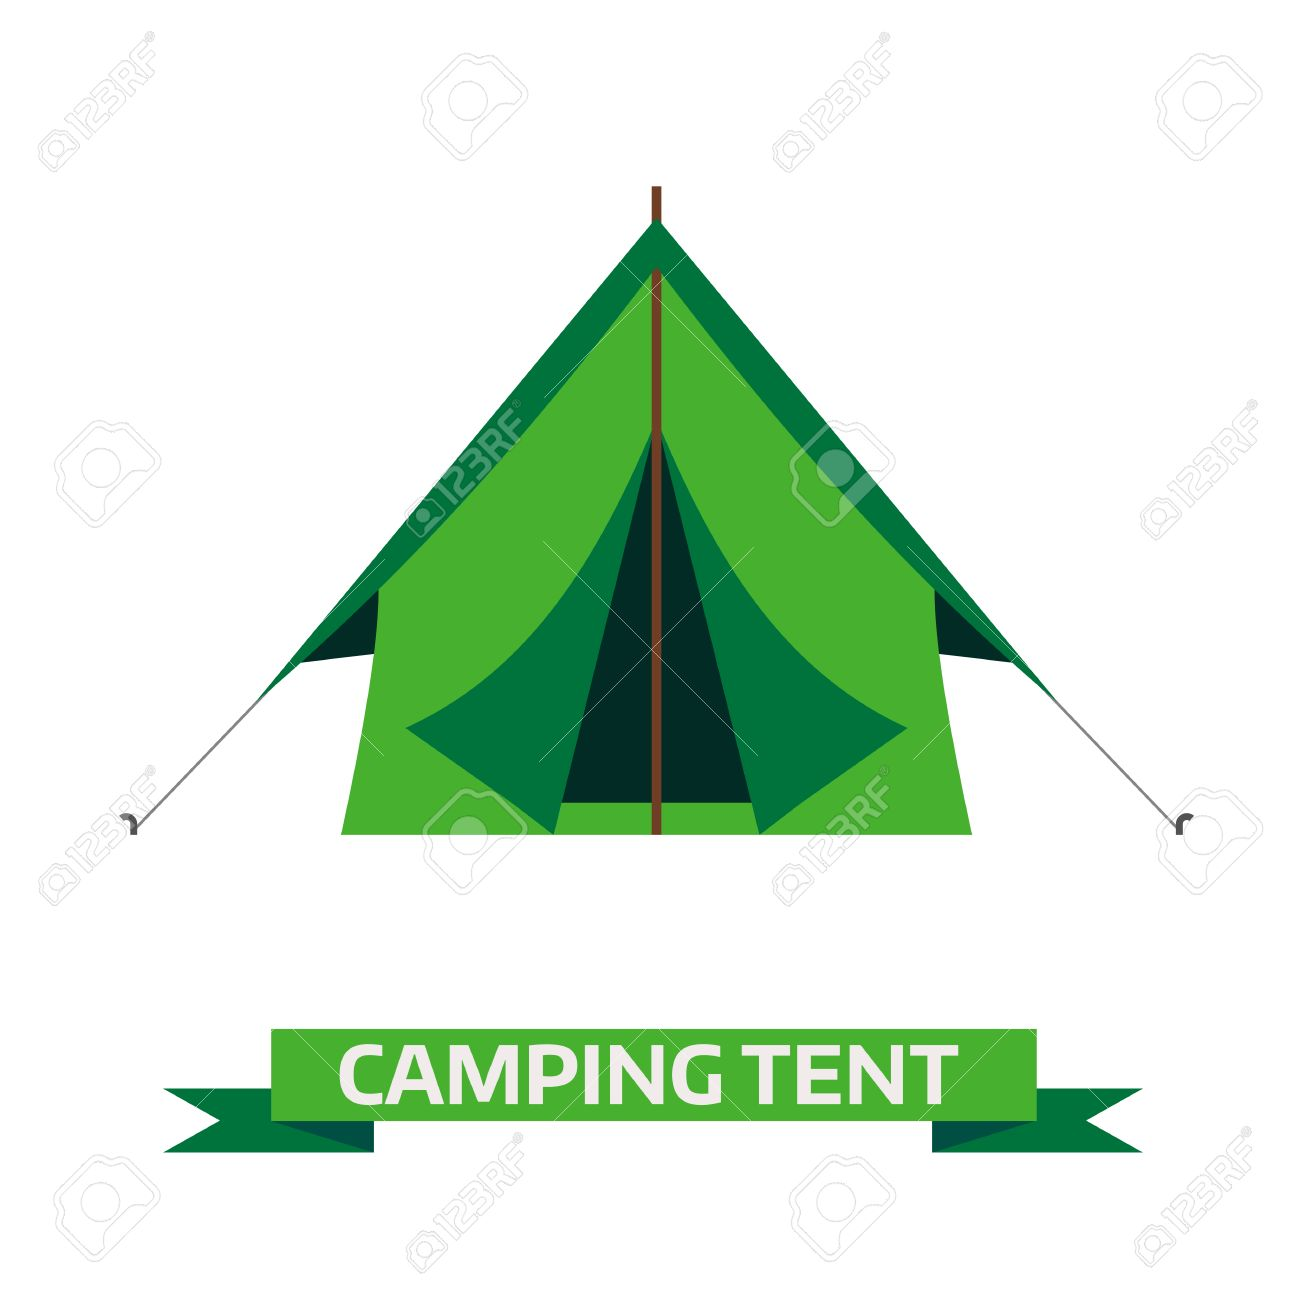 C&ing tent vector icon. Triangle flat design tent. Tourist hiking equipment isolated on white  sc 1 st  123RF.com & Camping Tent Vector Icon. Triangle Flat Design Tent. Tourist ...